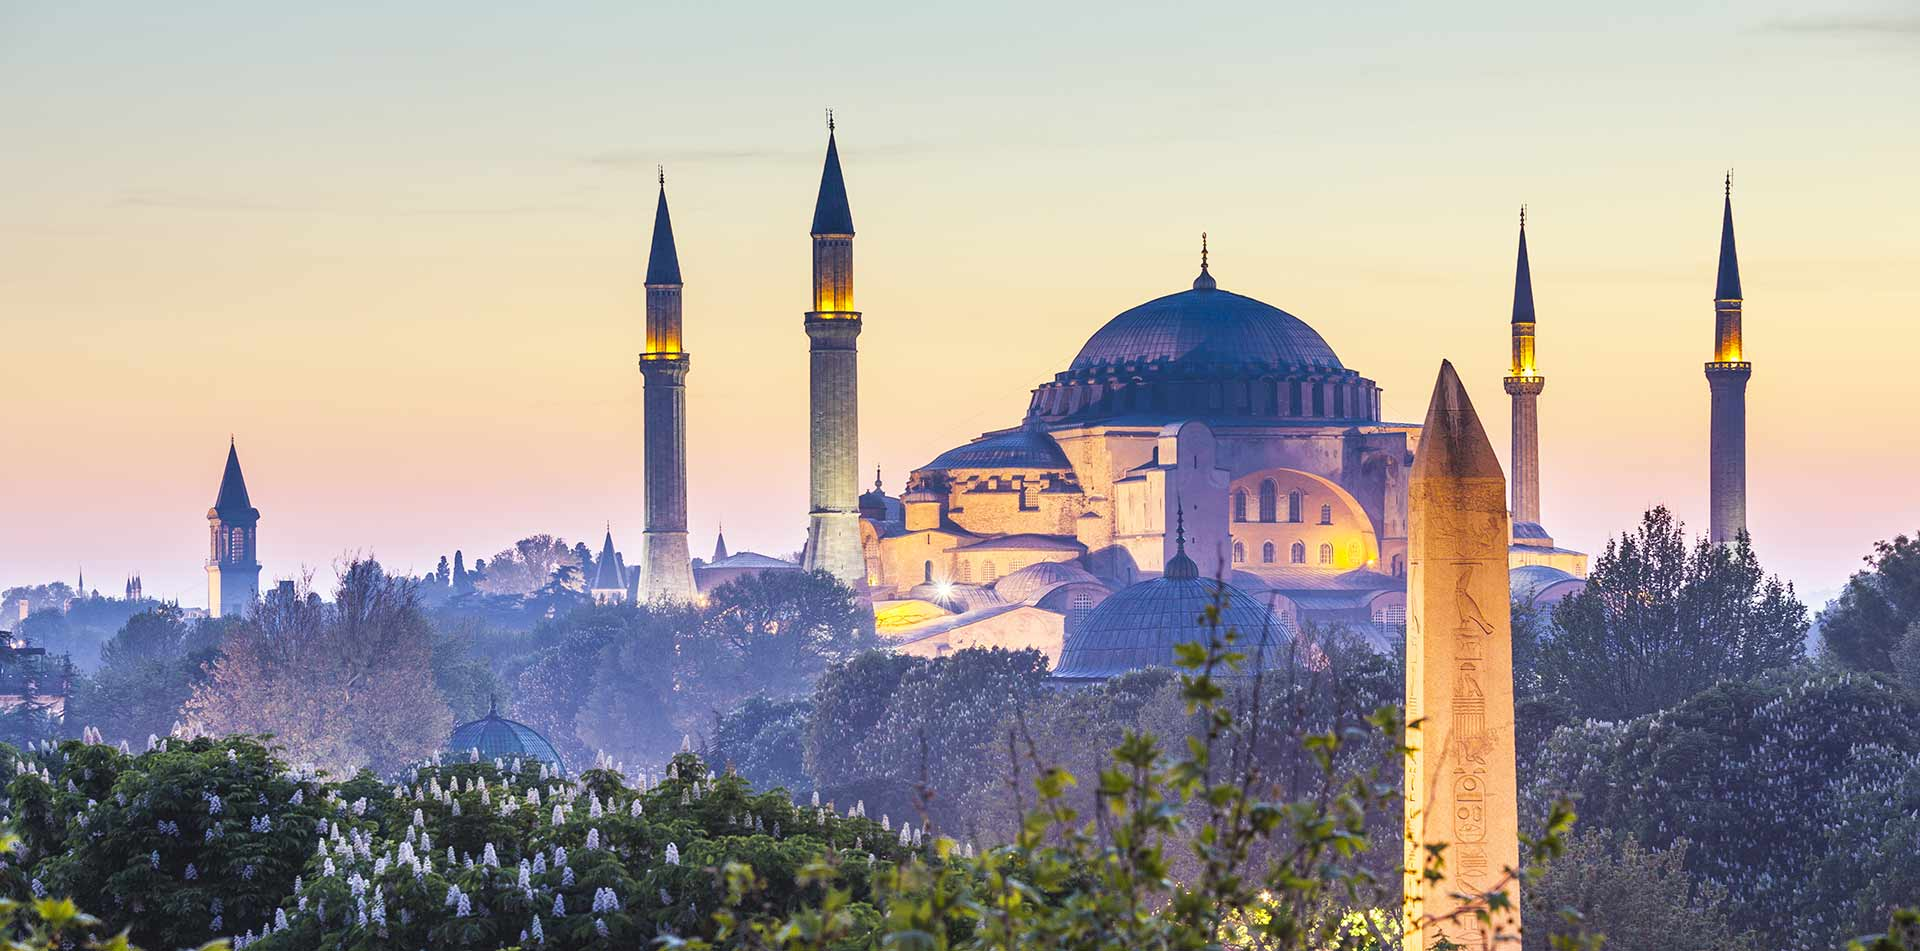 Blue Mosque in Istanbul at Dusk, Turkey